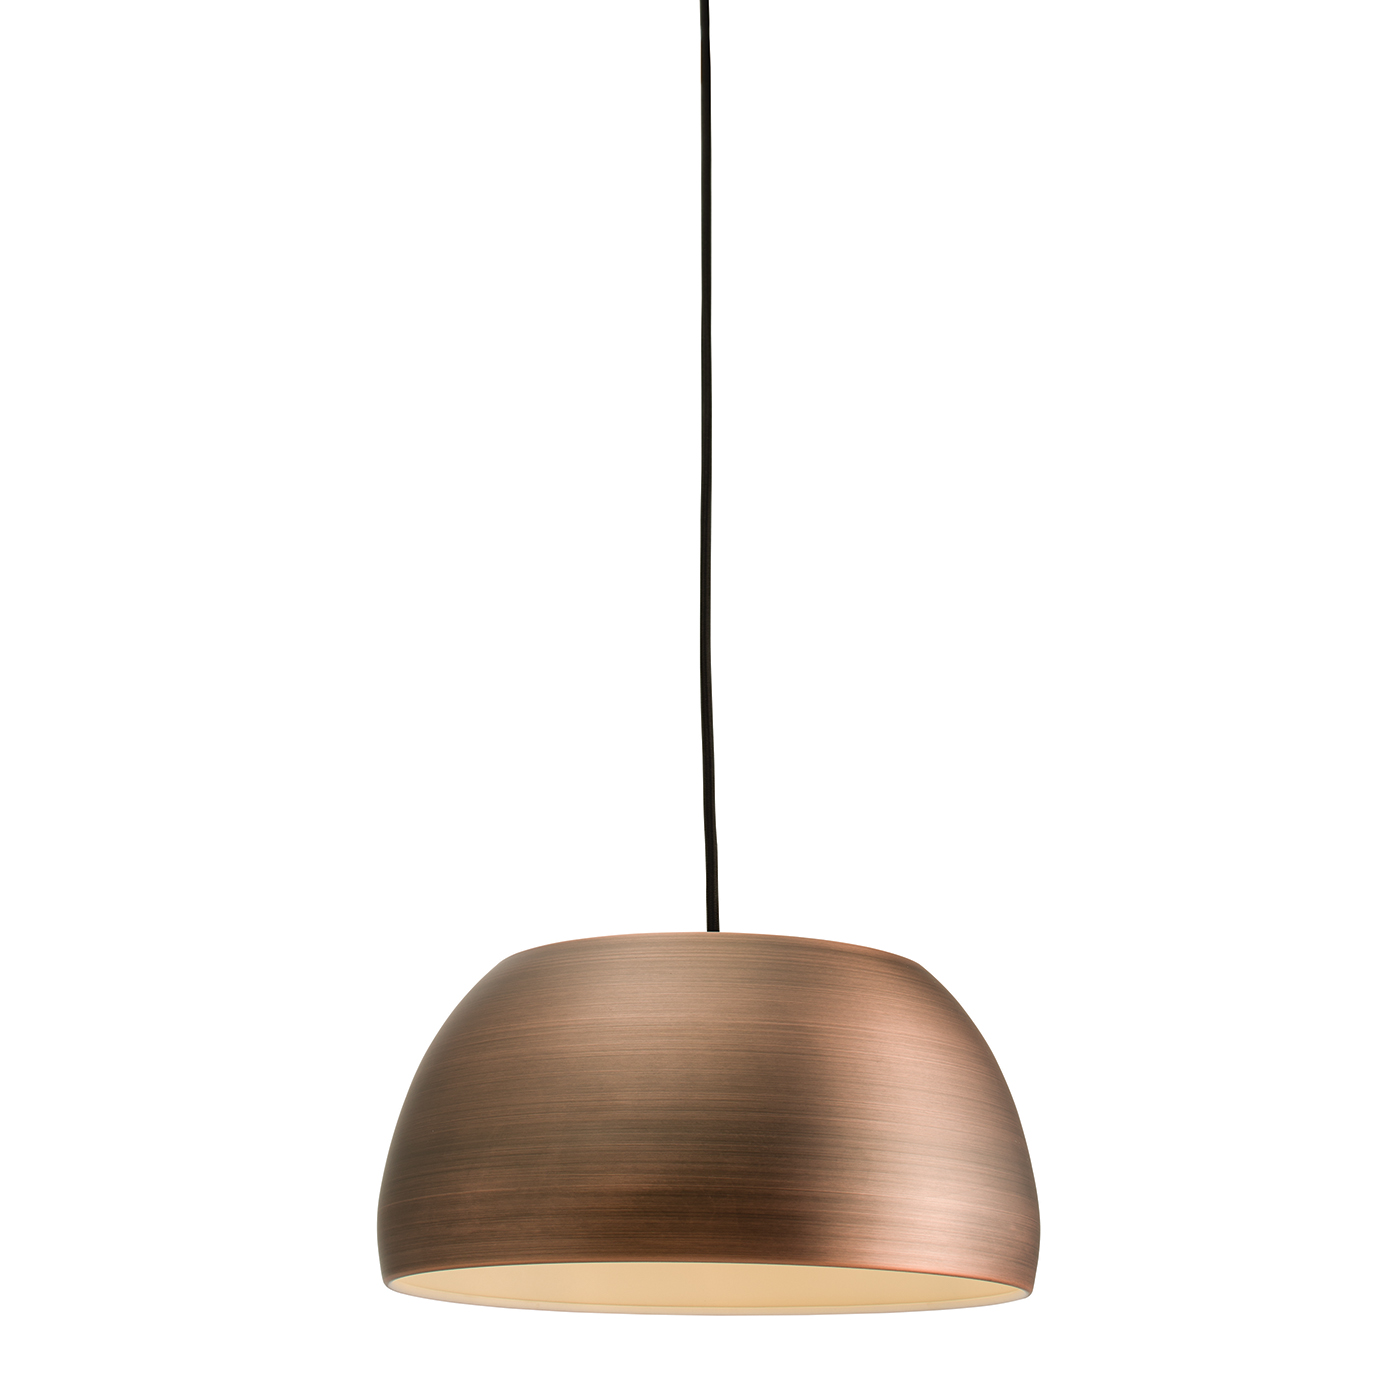 Endon Connery pendant 1x 60W Matt bronze effect plate